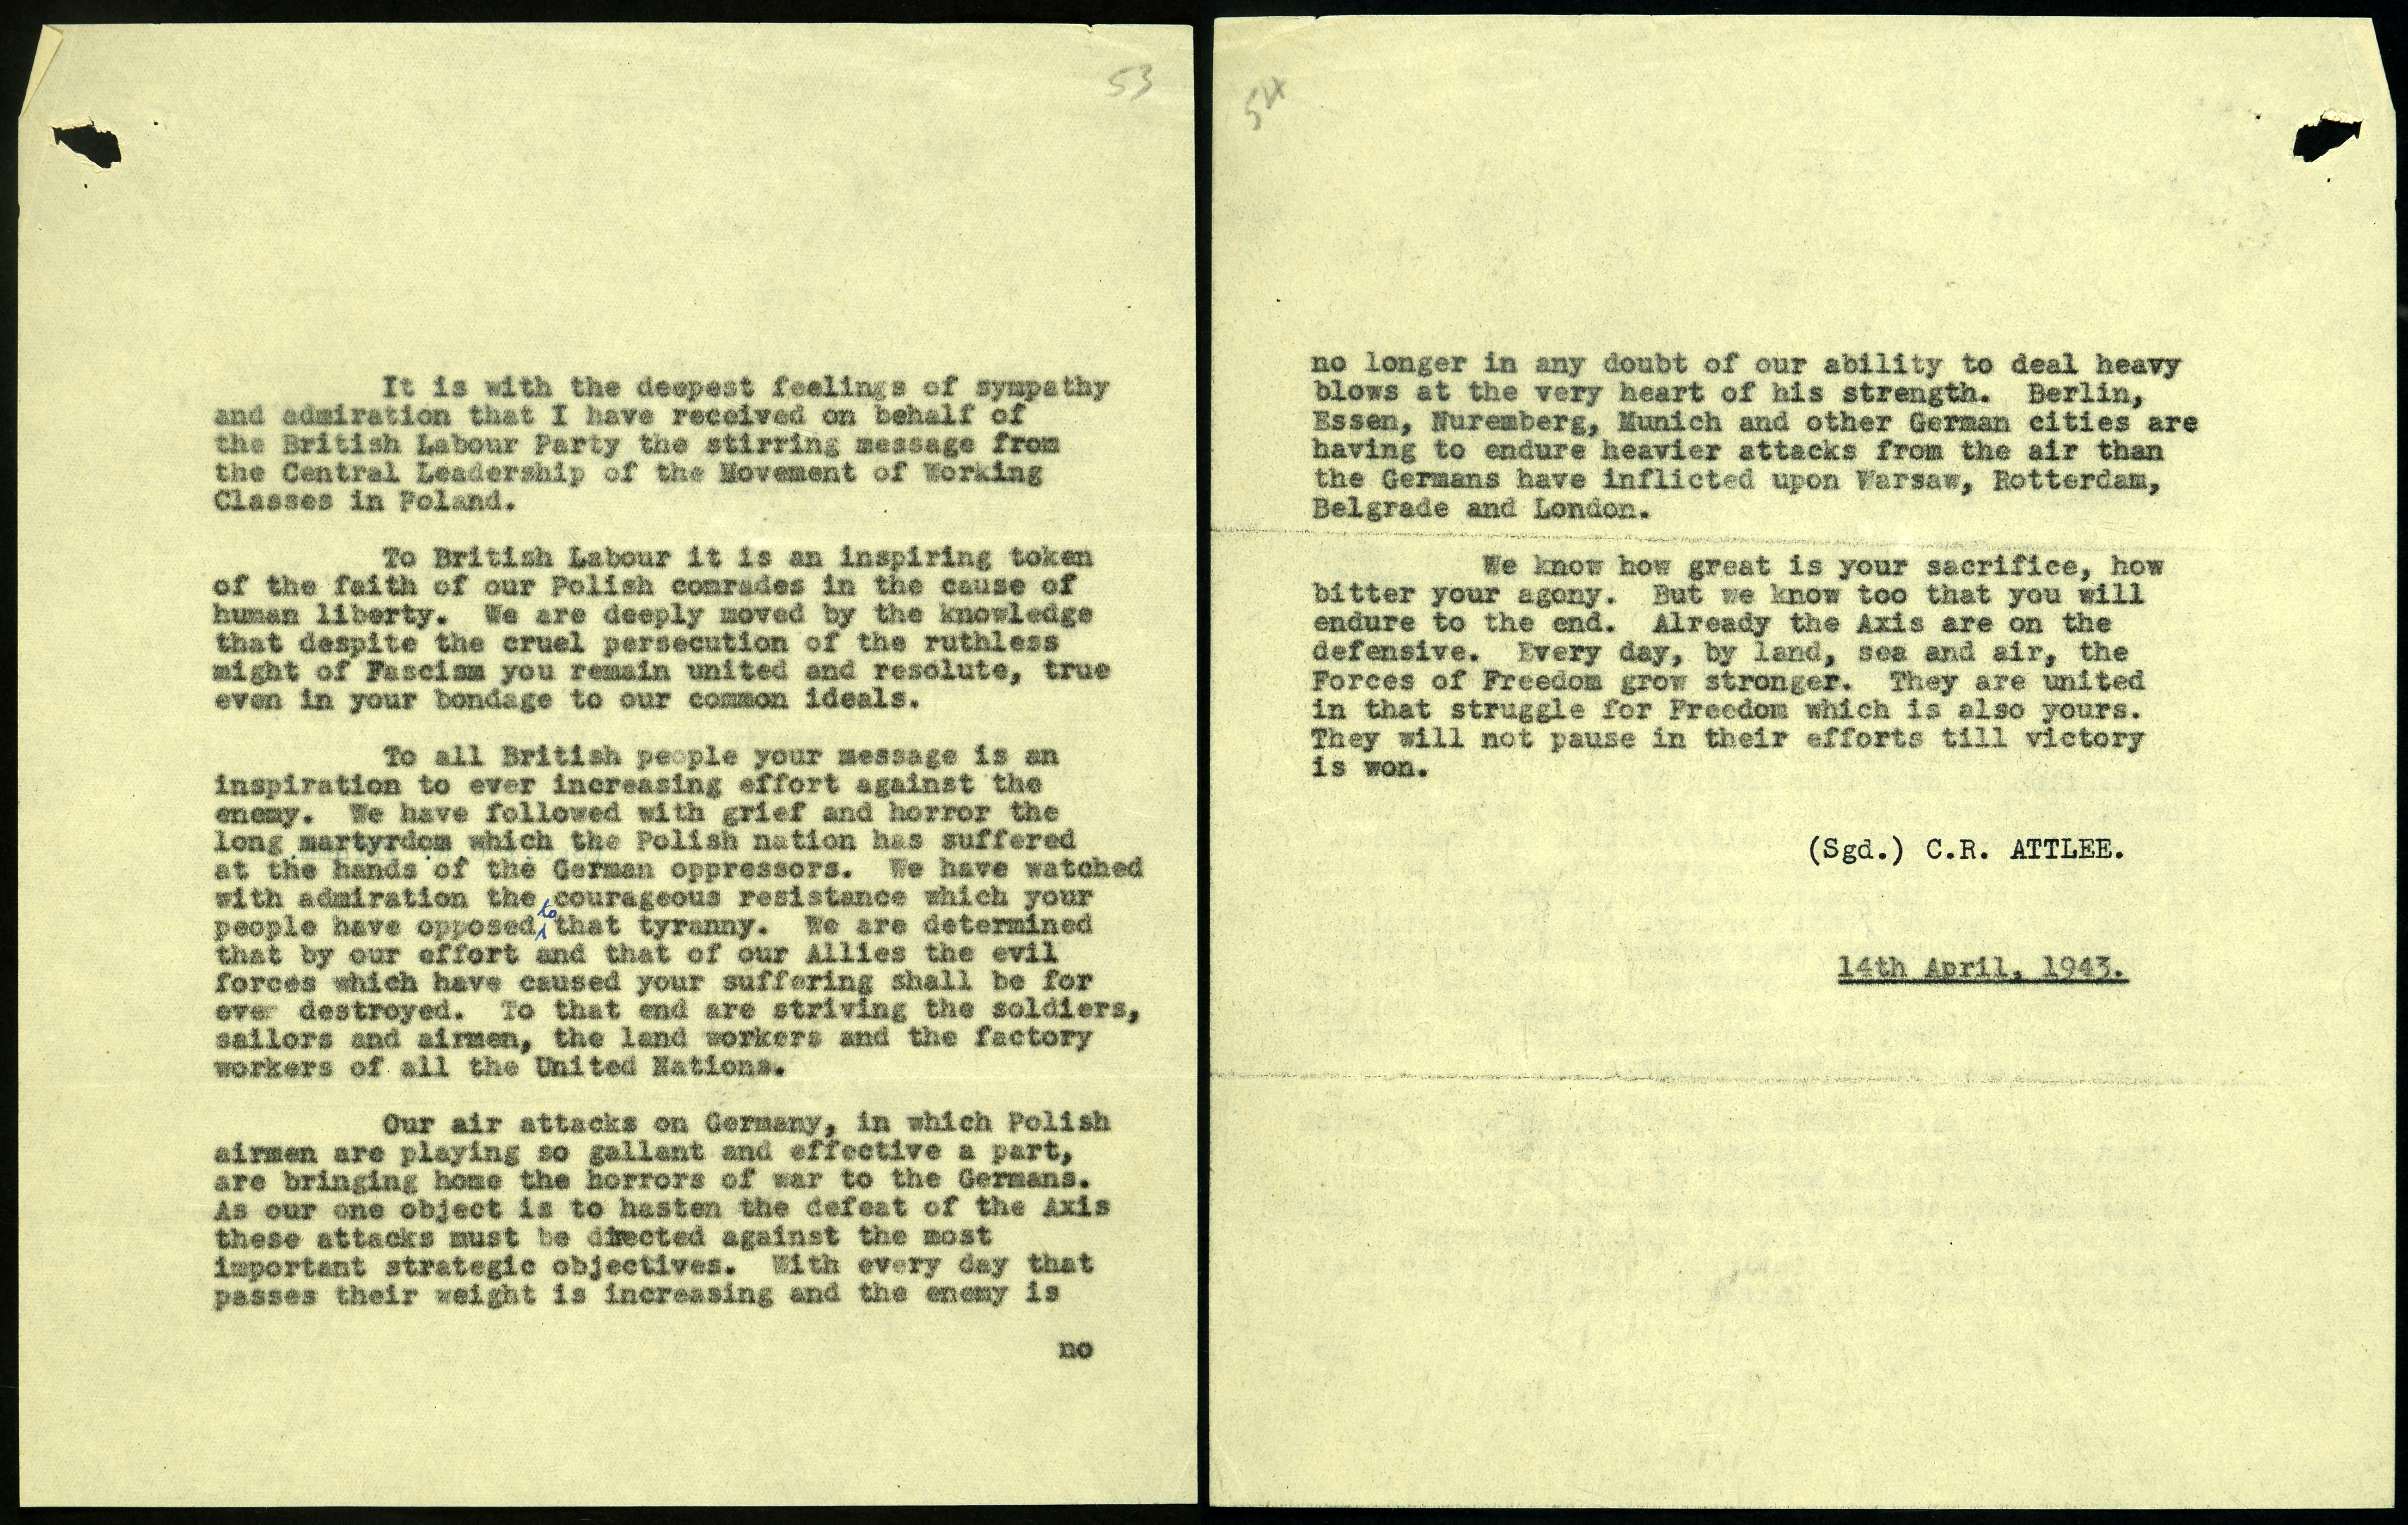 Response from Attlee regarding British response